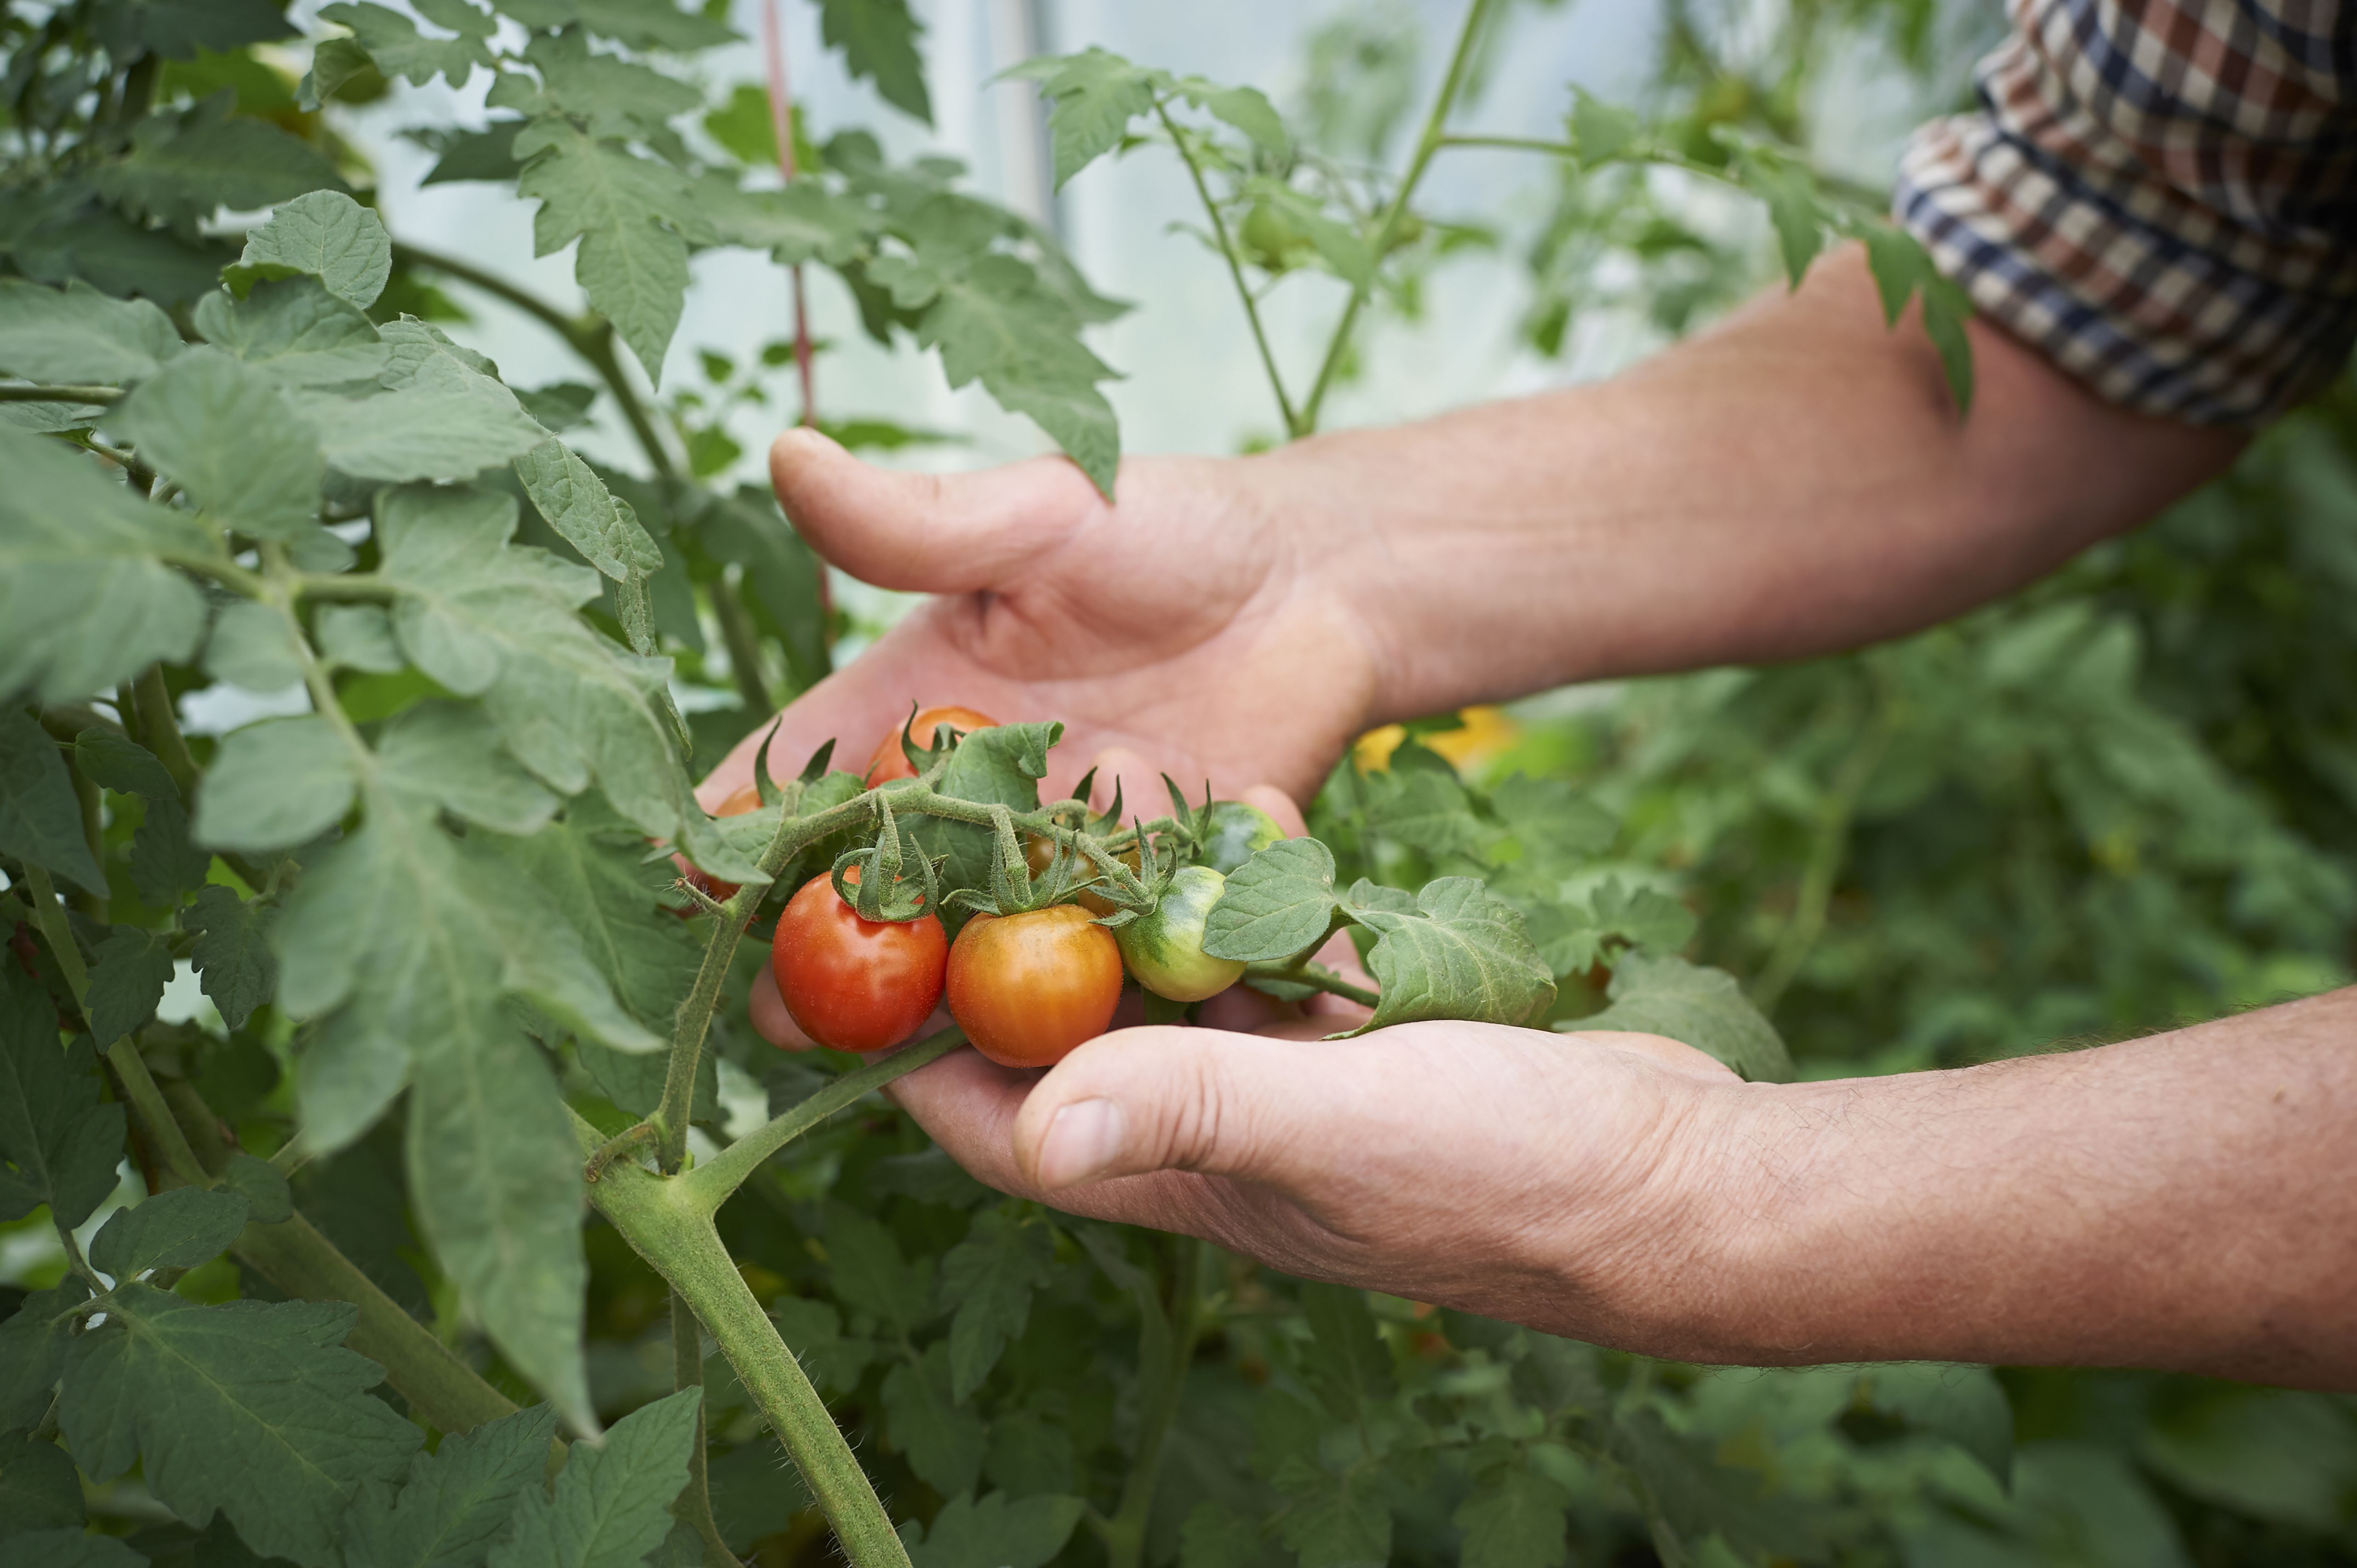 Hands holding fresh tomatoes on the vine.